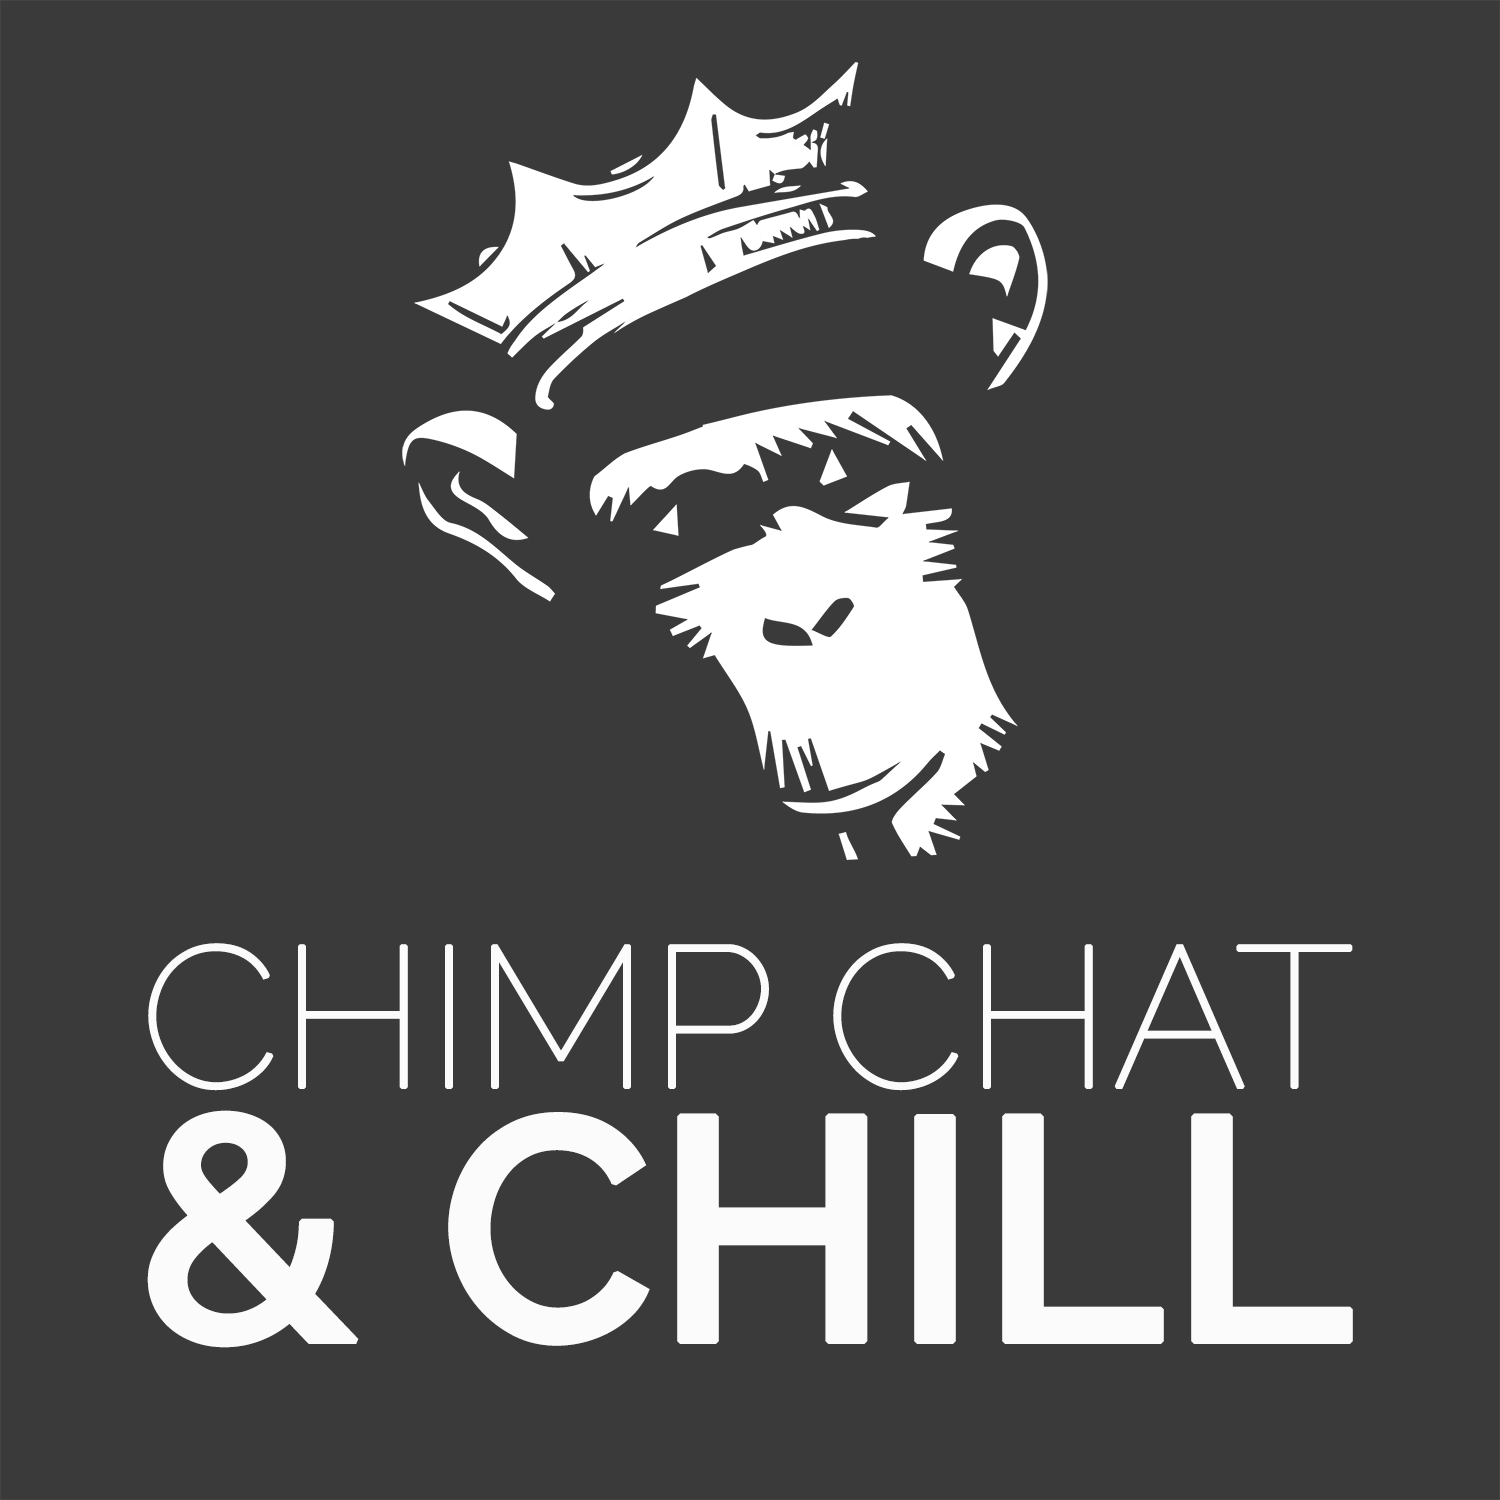 The Chimp Chat & Chill Podcast